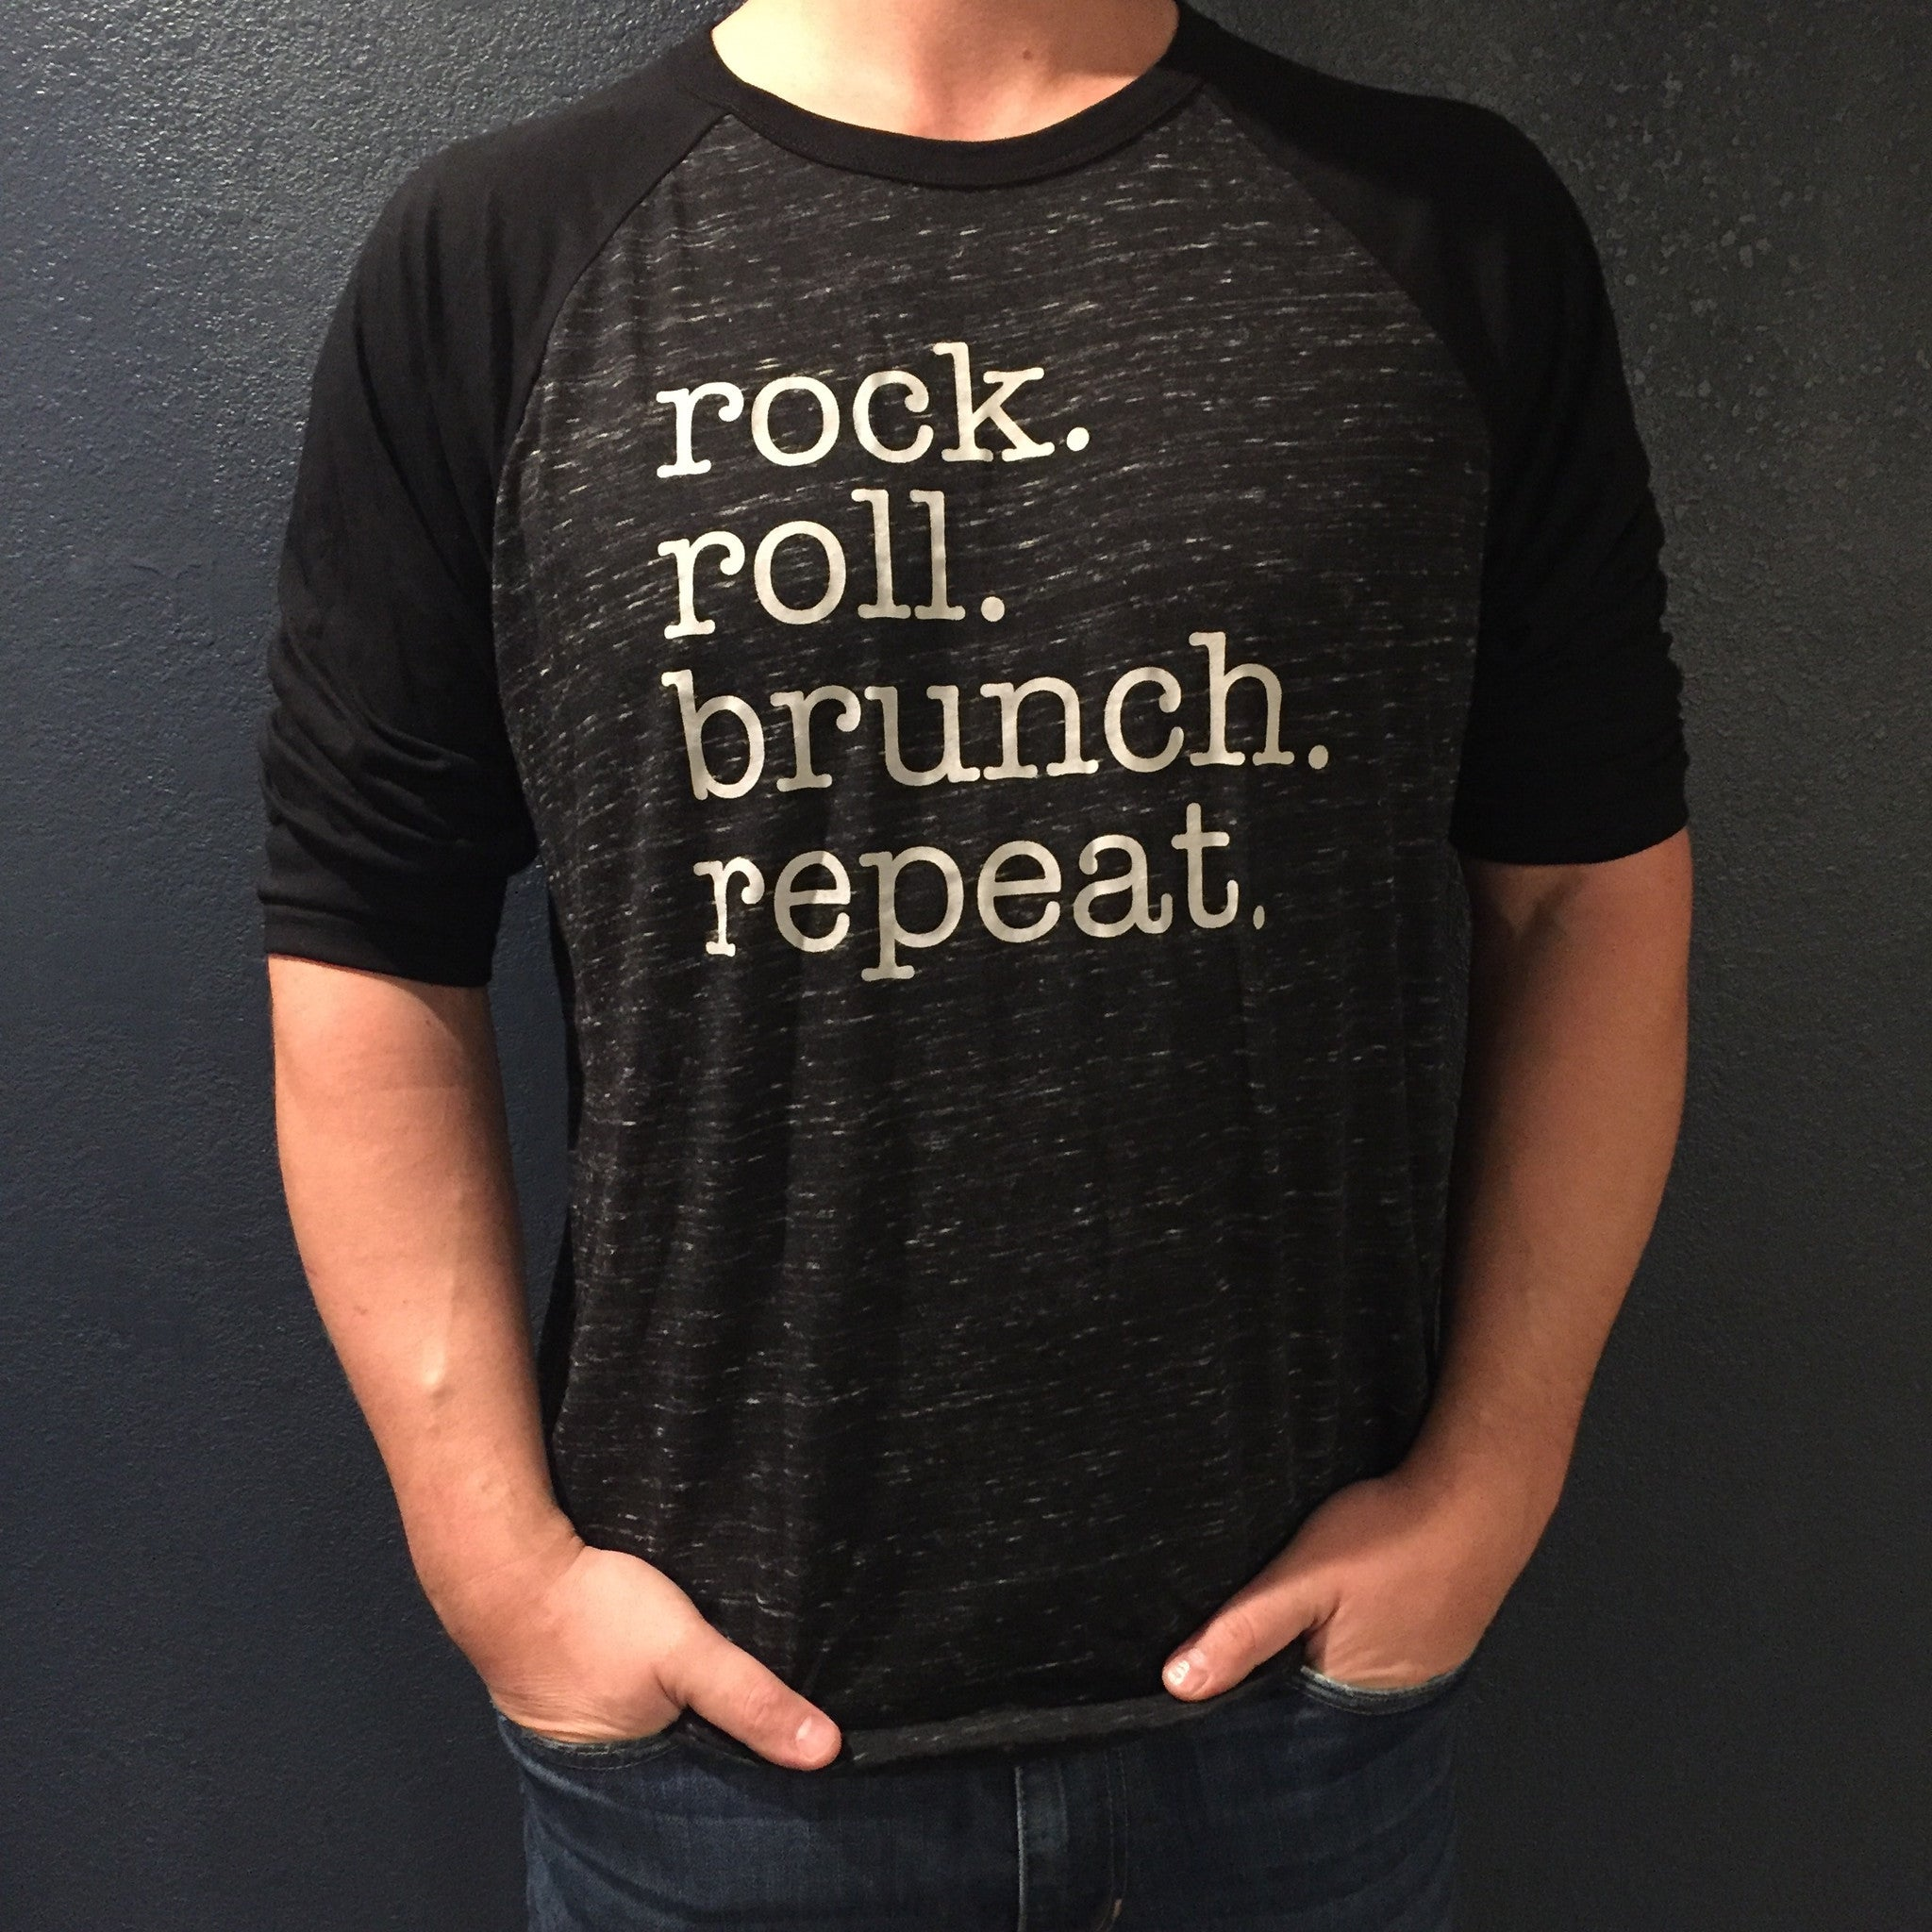 rock. roll. brunch. repeat. unisex baseball tee